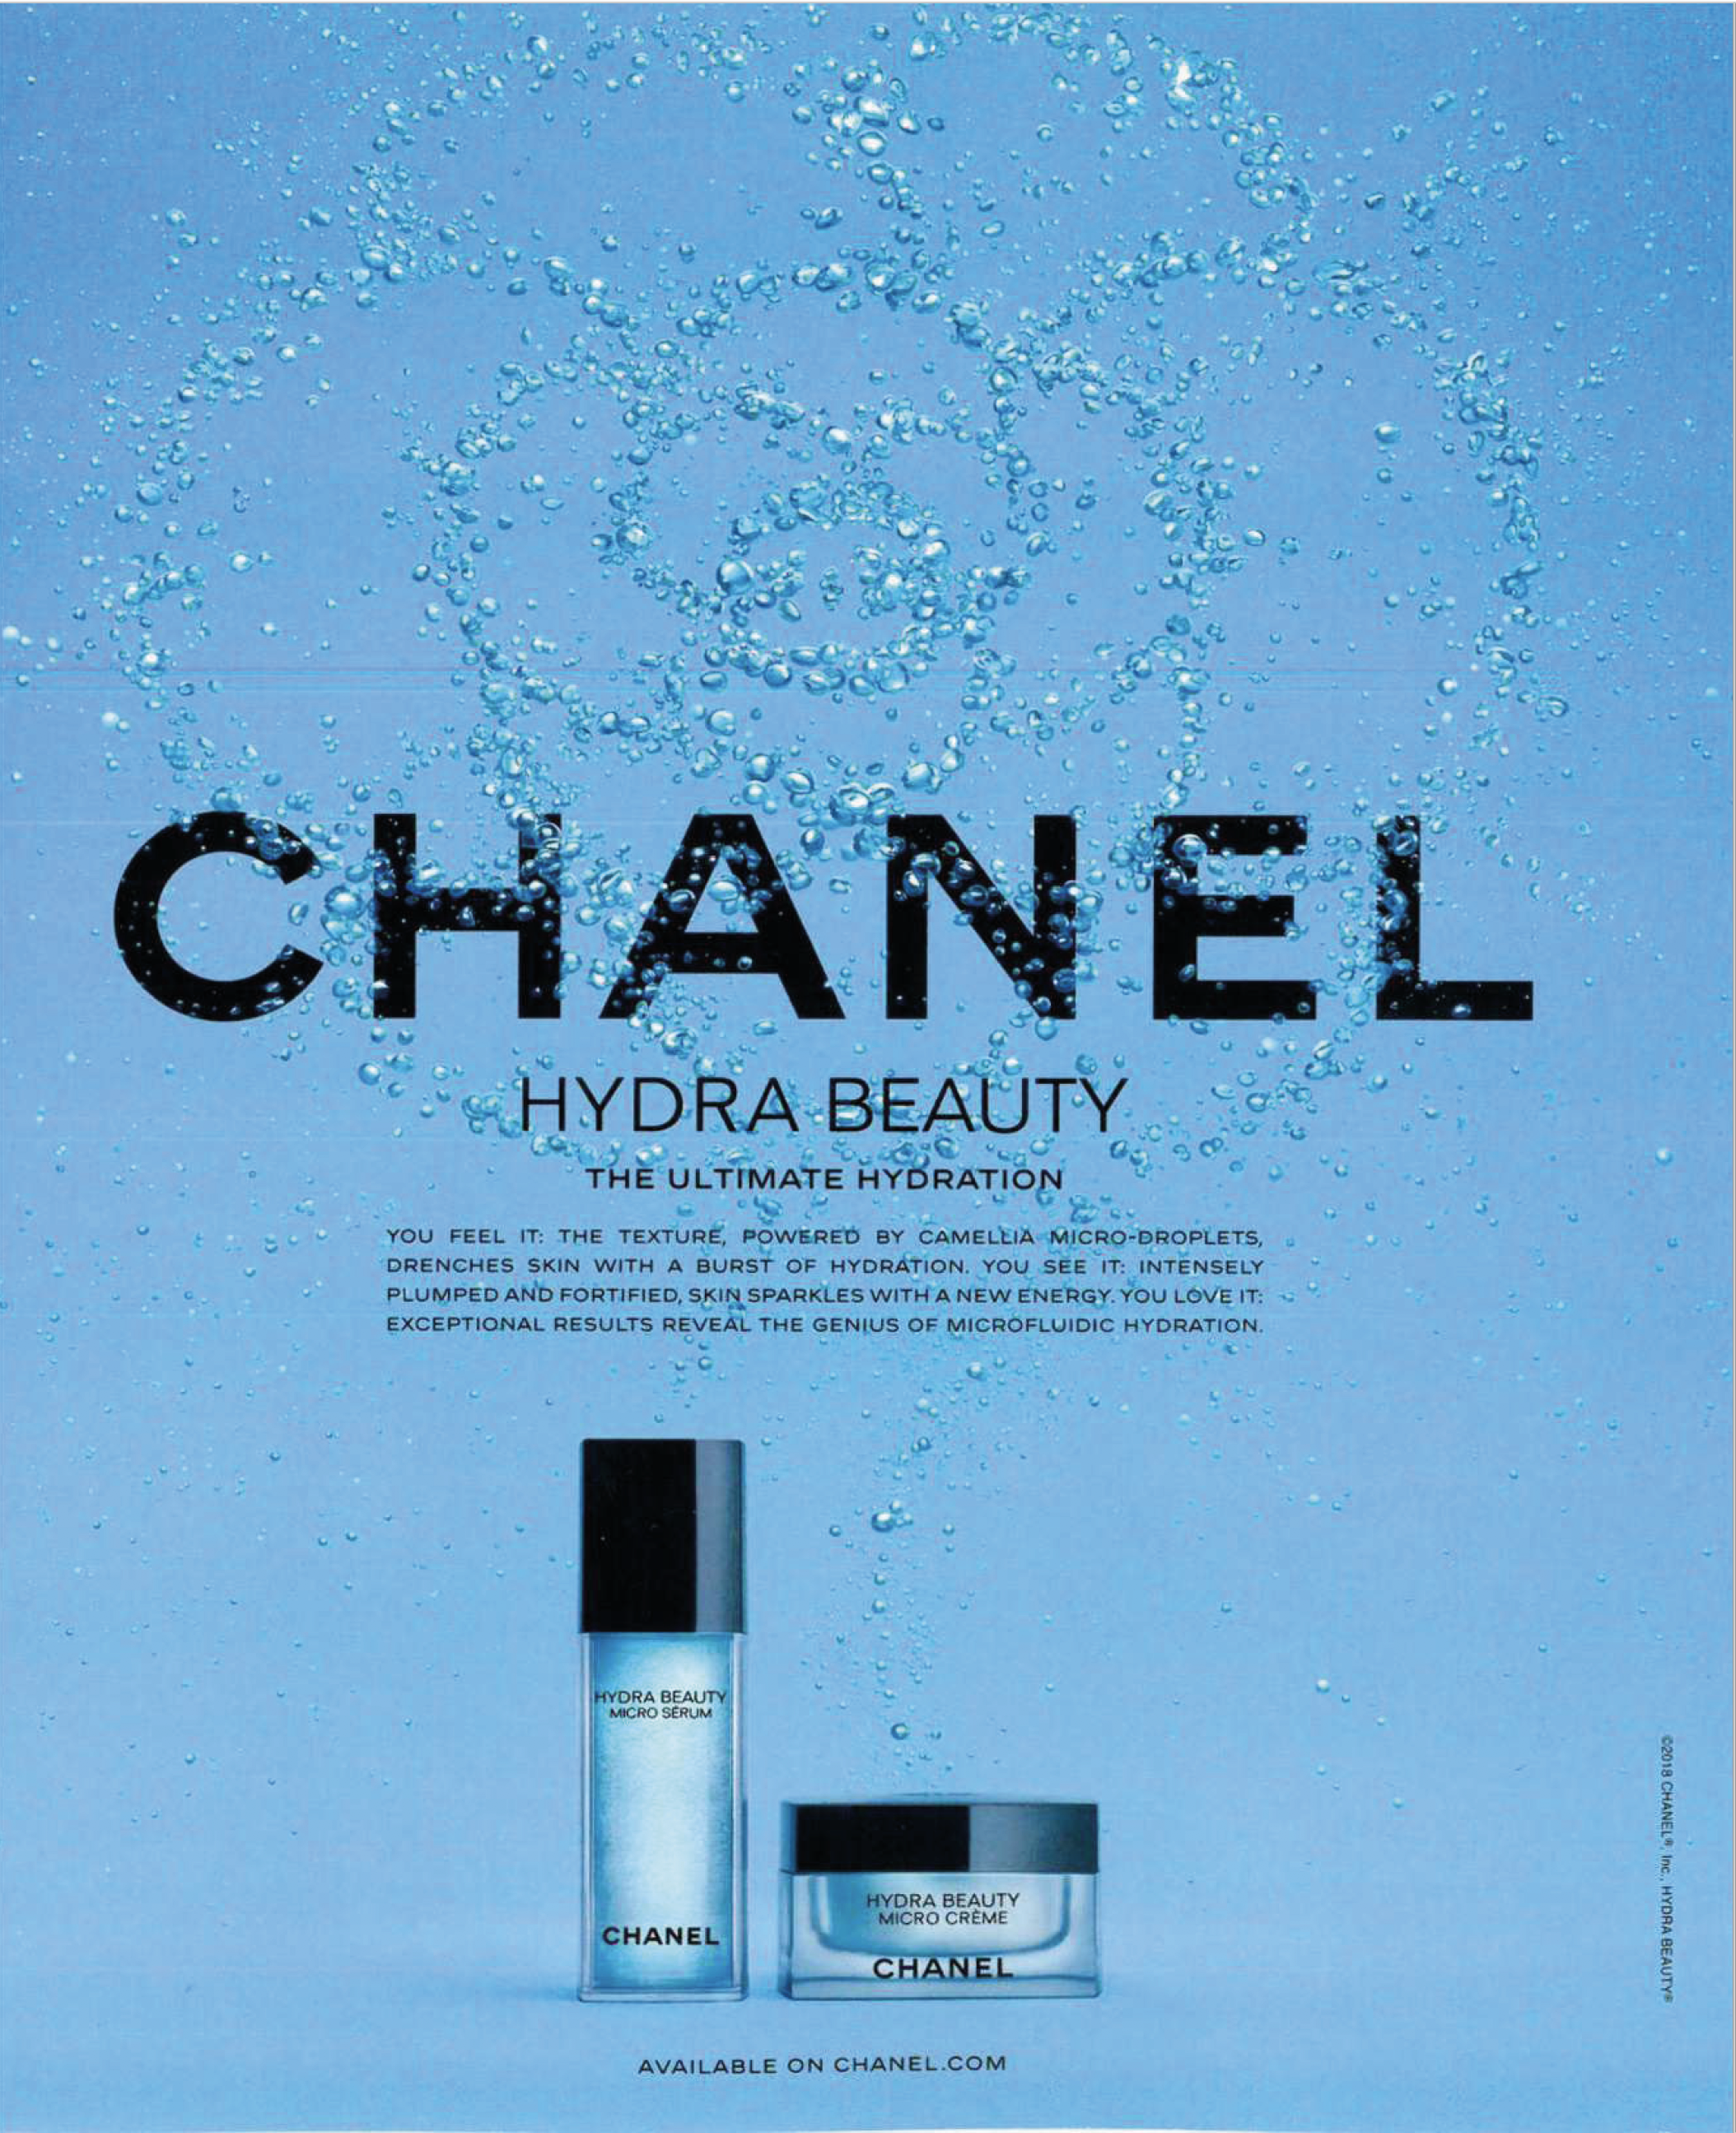 eb3e4d966d59 CHANEL - Hydra Beauty | Creativity :: make-up & skin care & Perfume ...